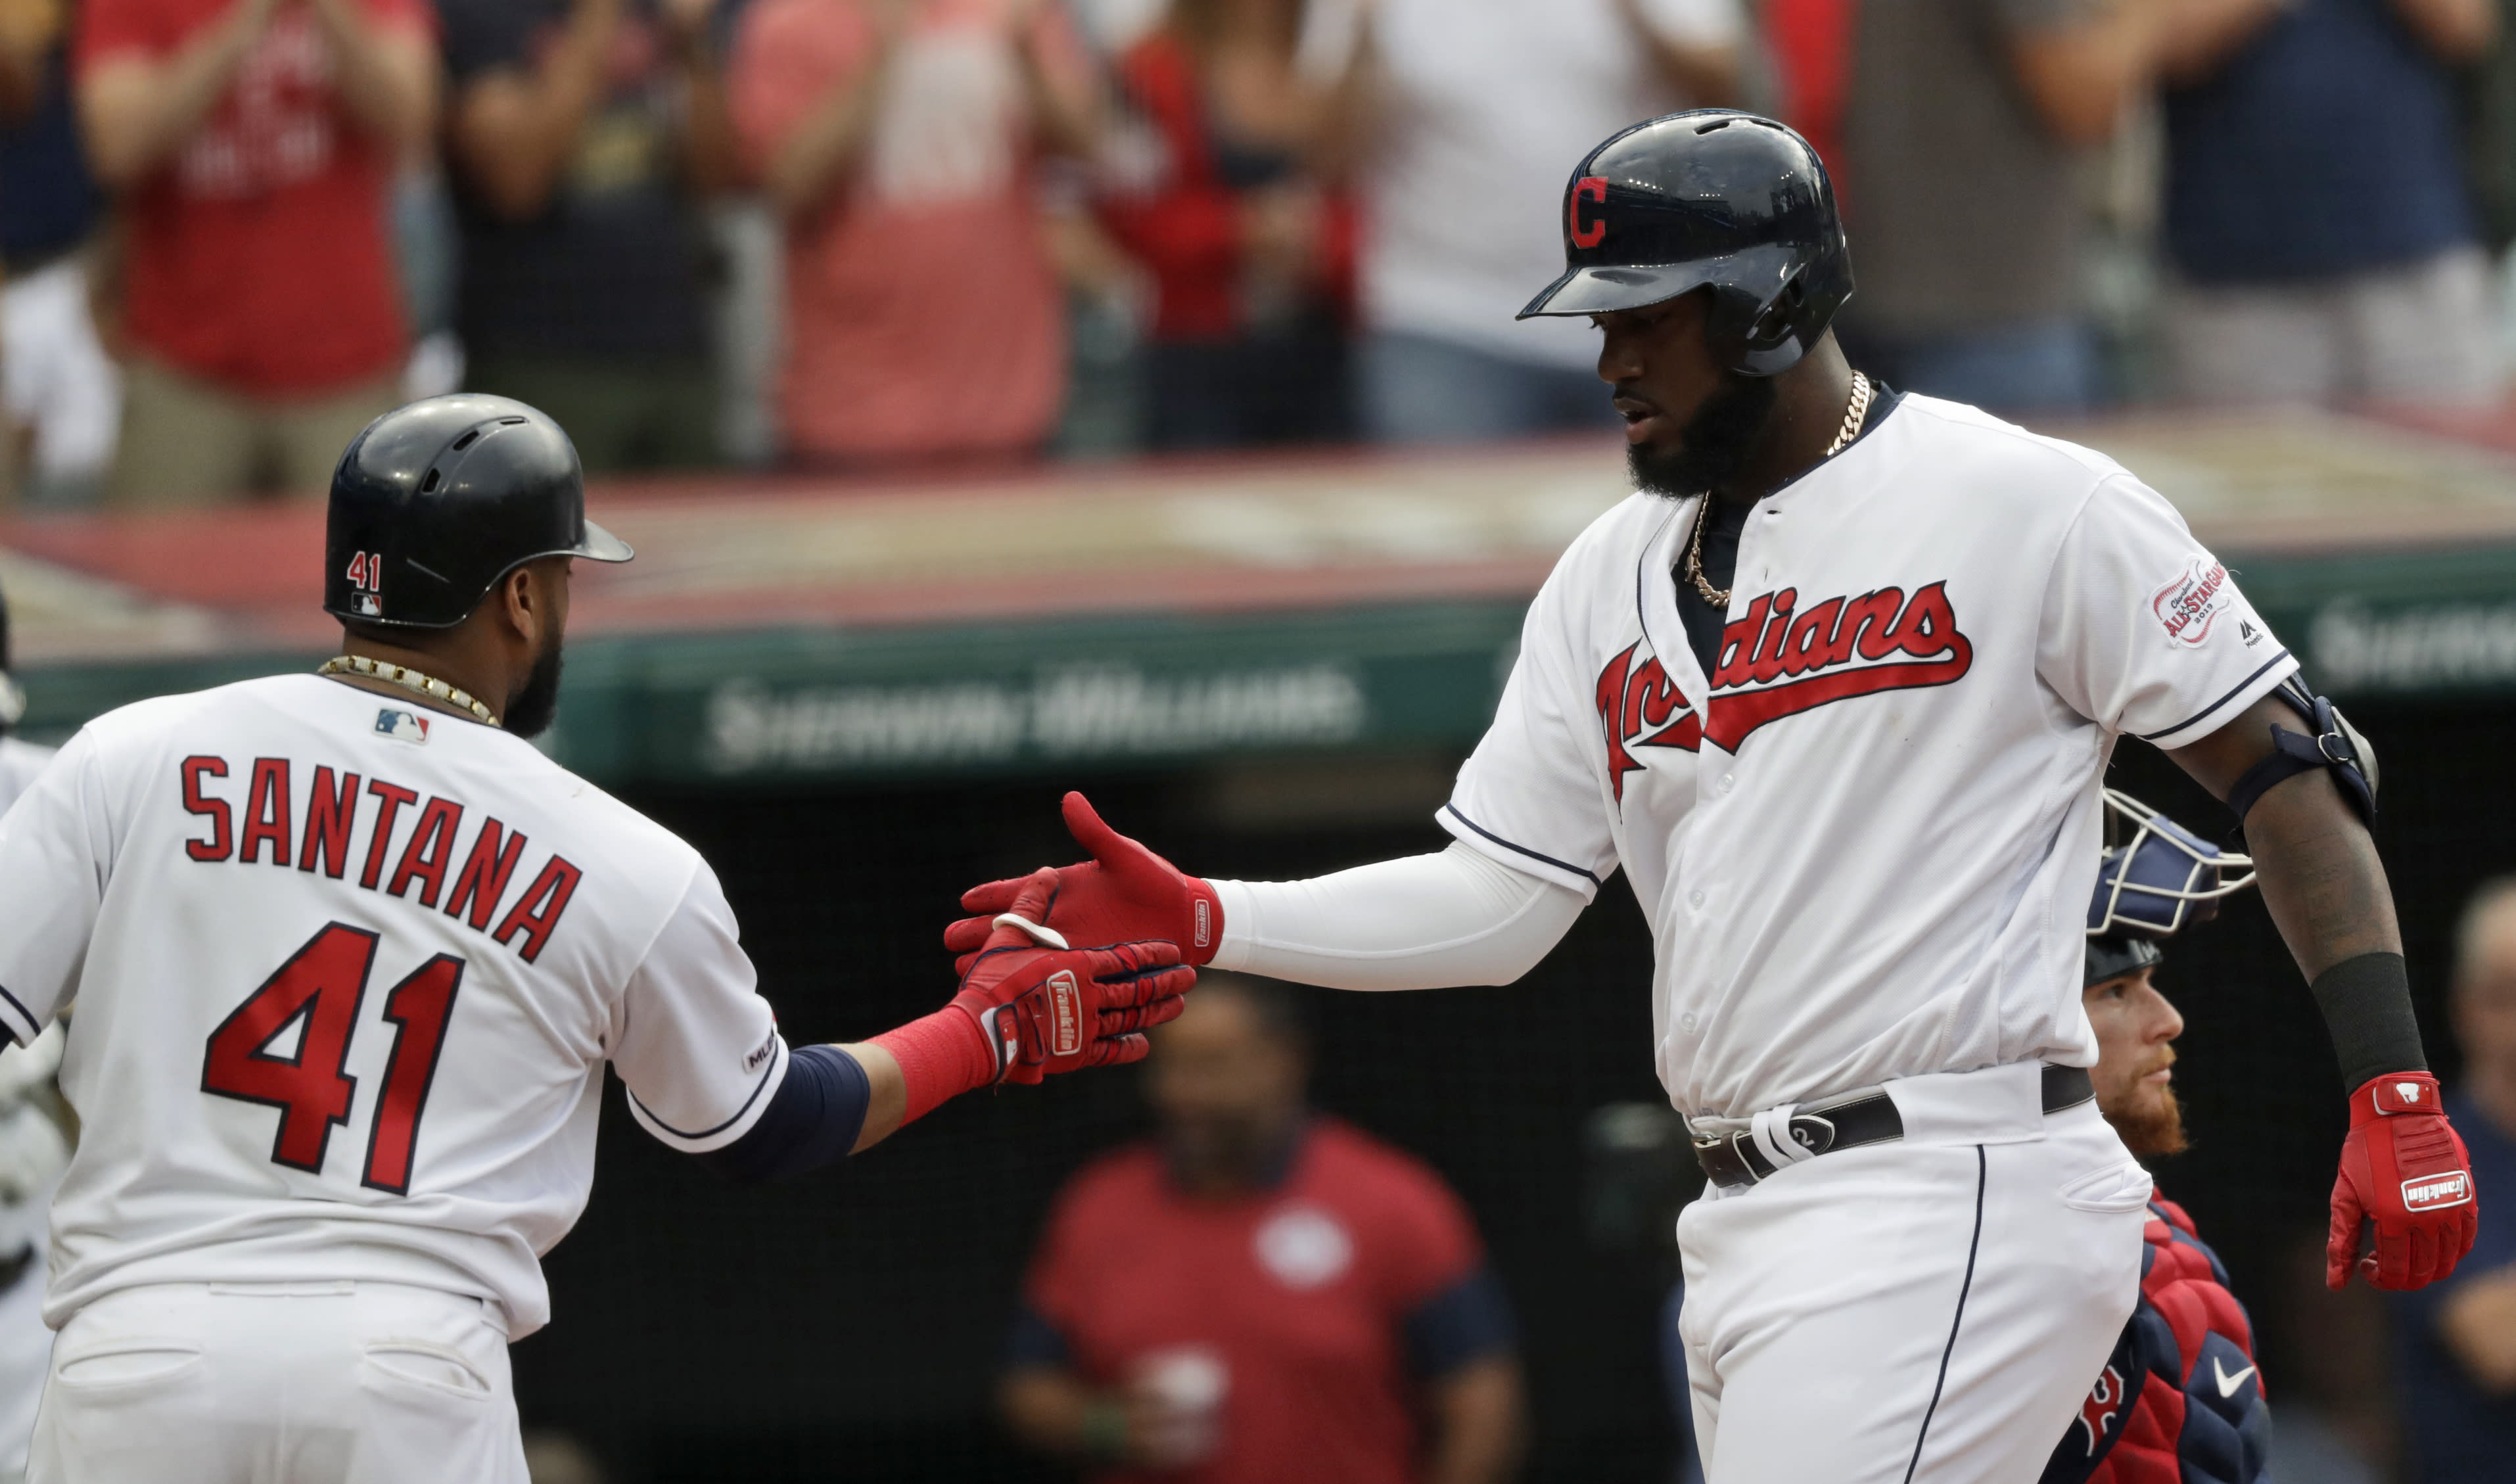 Indians top BoSox 6-5 on Santana walk-off, 1st in AL Central